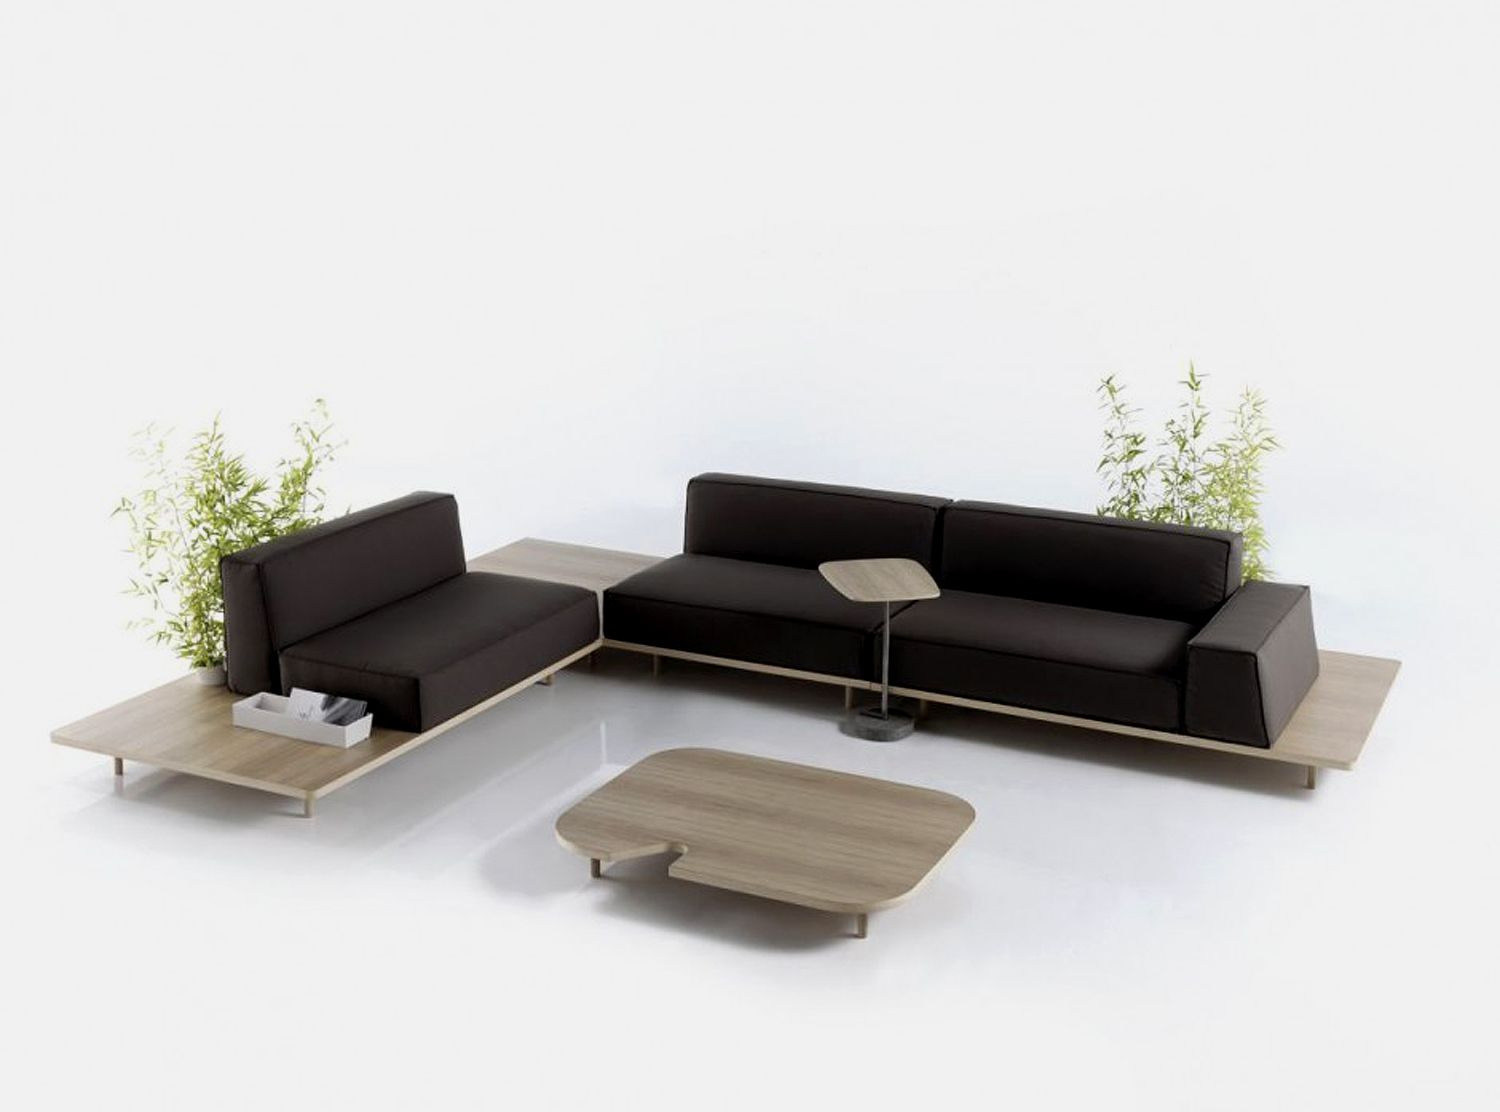 Modern Style Couches contemporary furniture designs ideas | sofa furniture, modern and